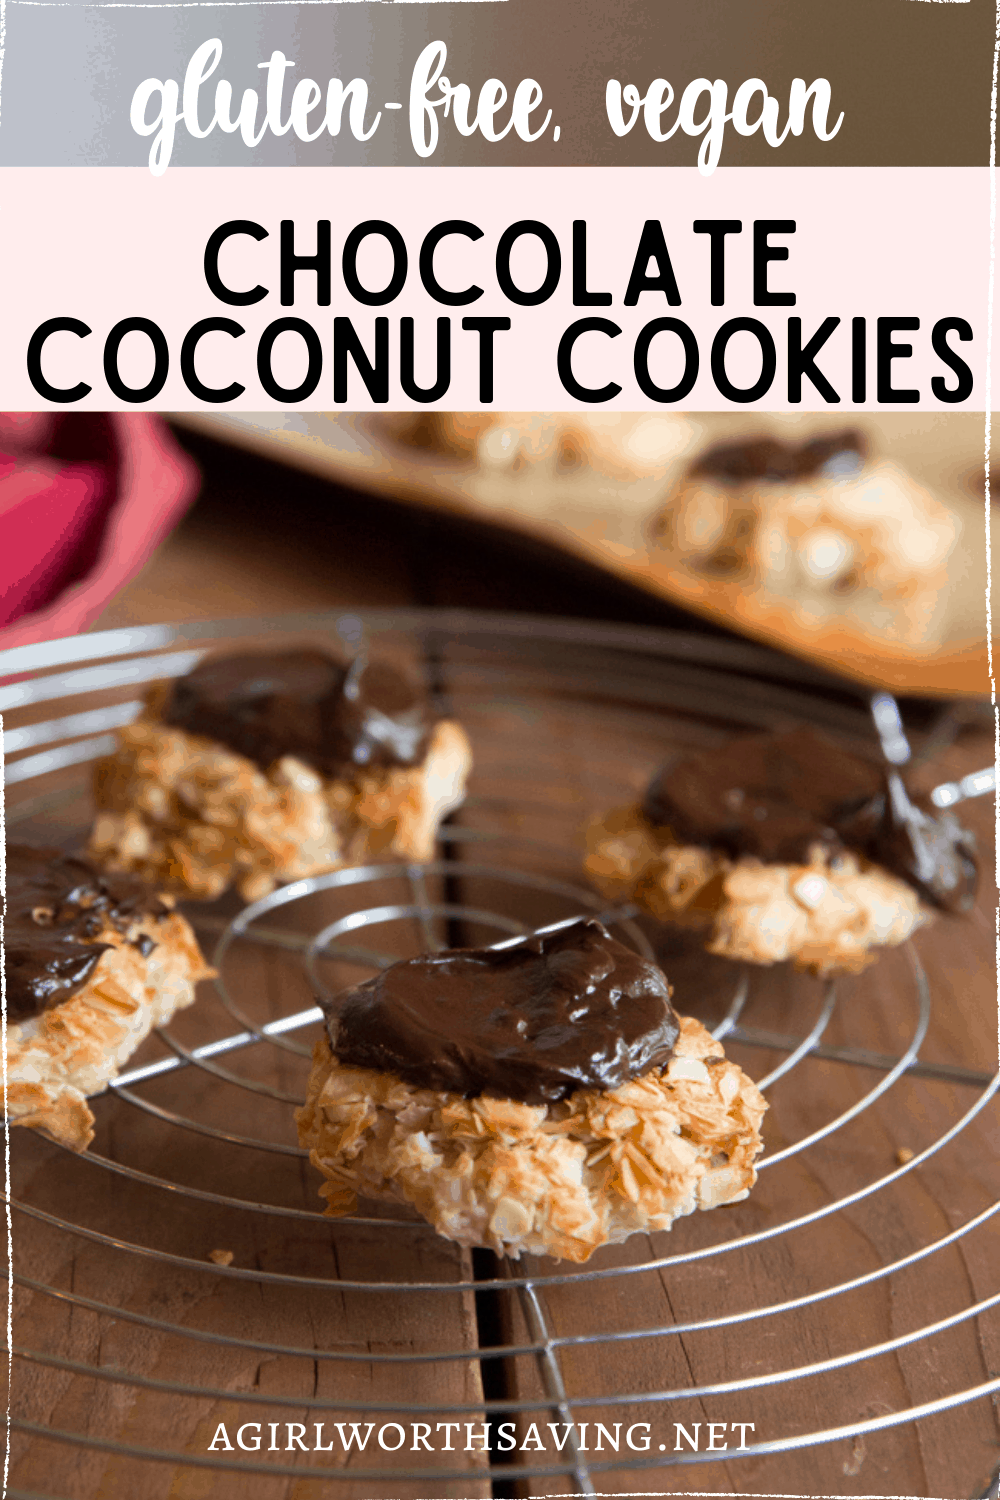 Coconut lovers will not be able to resist the flaky coconut and dark chocolate in these Chocolate coconut cookies.  They are easy and delicious.